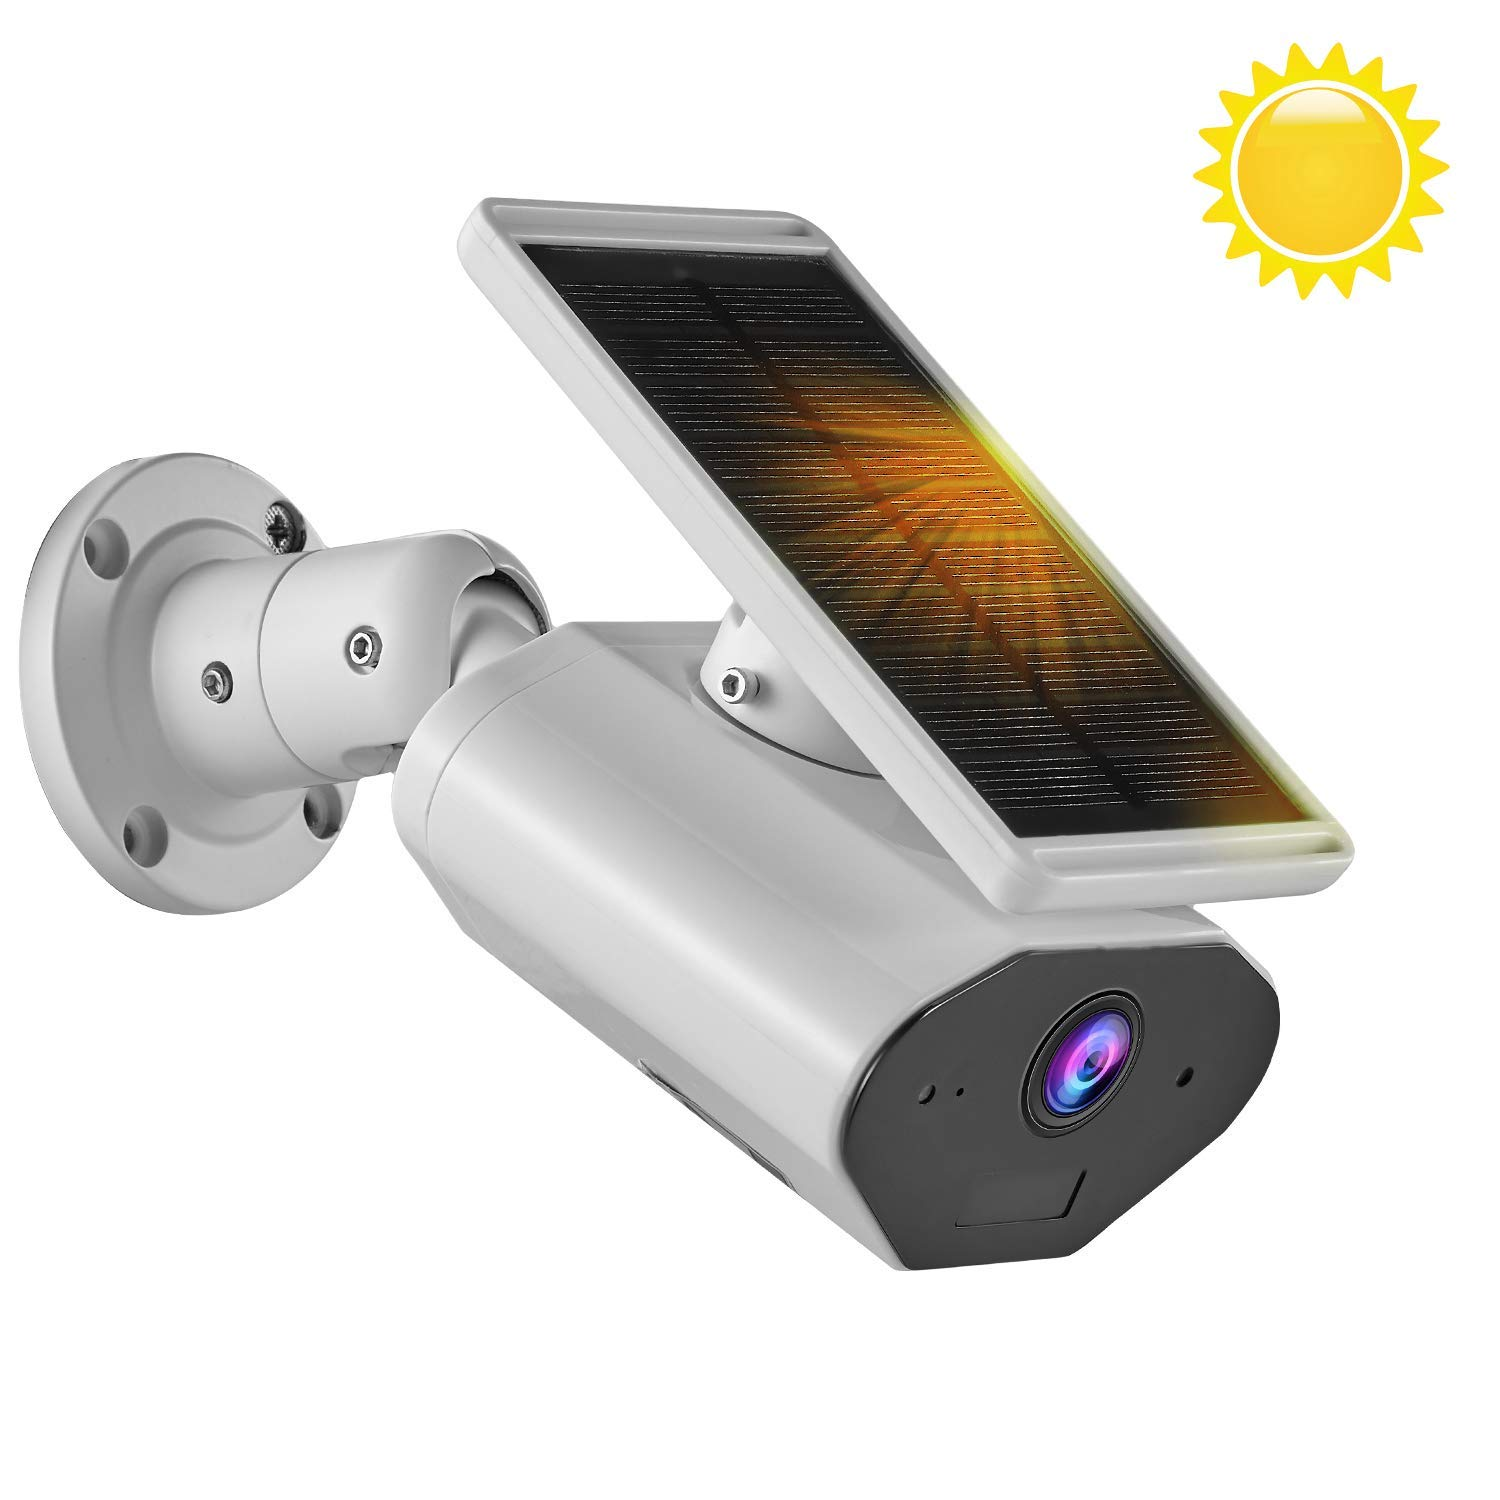 YTVISON Outdoor Wireless Solar Powered Security Rechargeable Camera, 2.4GHz WiFi Home Security Camera, with Night Vision/Motion Detection/Two-Way Audio/IP66 Waterproof, Support Android and iOS by YTVISON